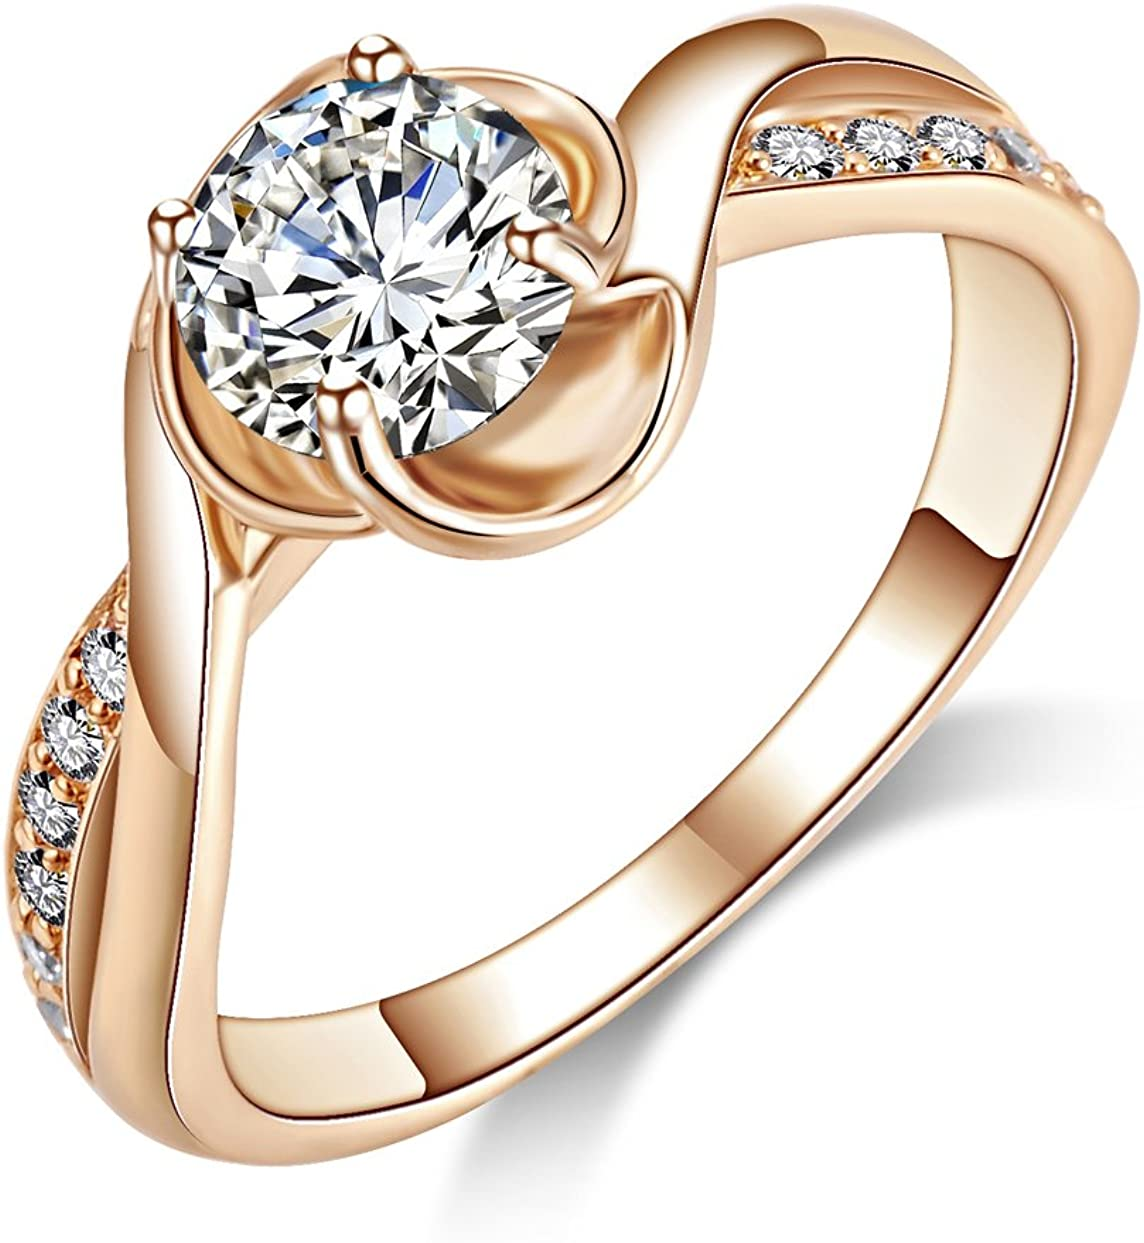 Gemstone High Quality Cubic Zirconia Stone Bridal Rings Handmade Ring Promise Engagement Ring Flower O 925 Sterling Silver Rings